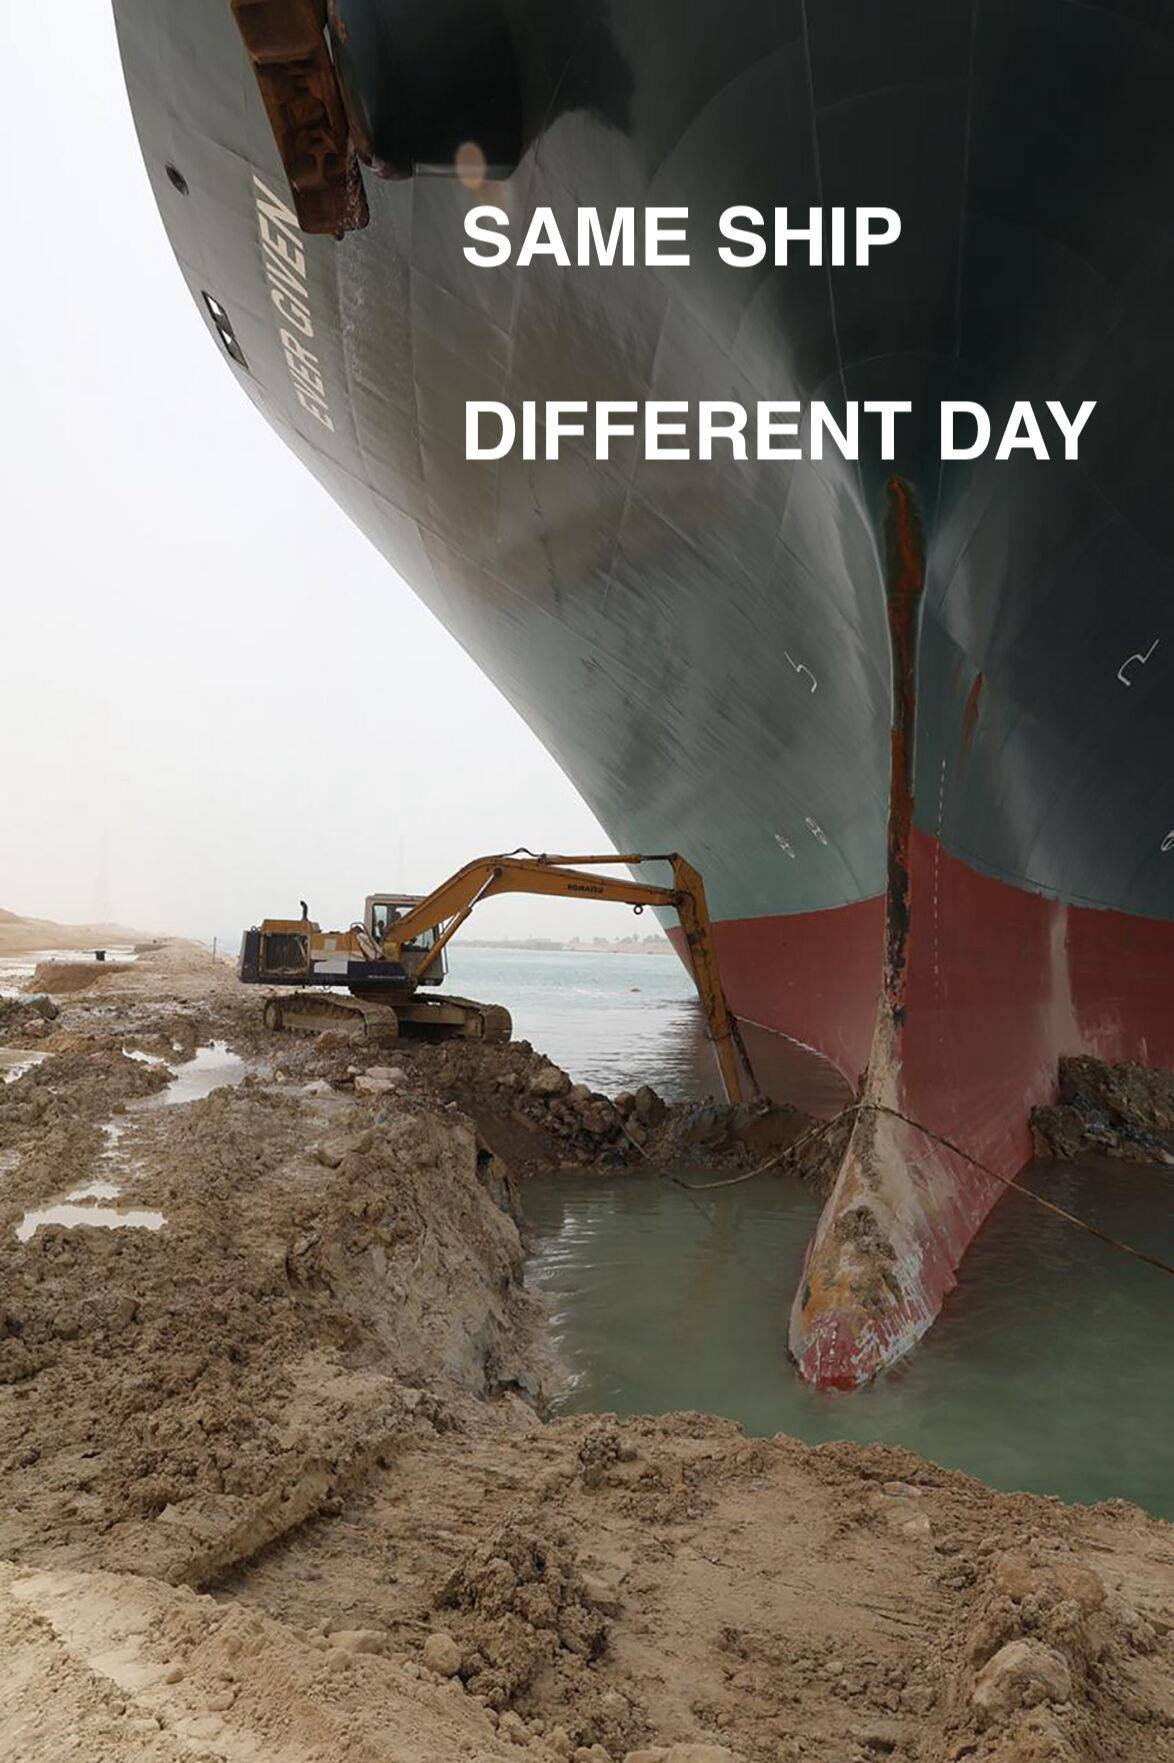 Same Ship different day